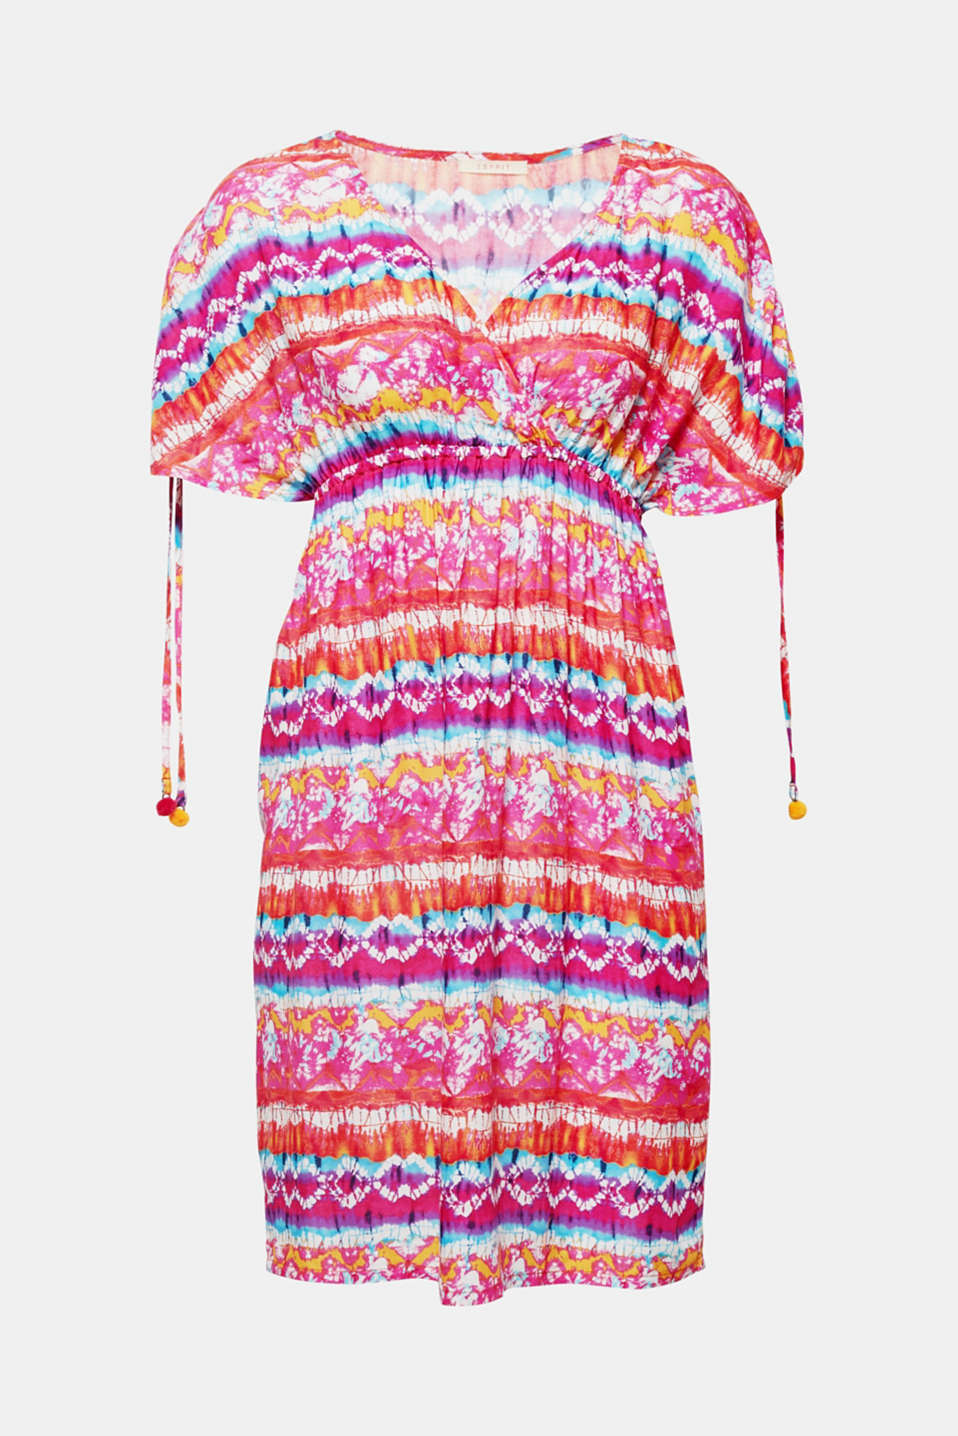 BALBOA BEACH collection – this beach dress is a bright, eye-catching piece with vibrant colour gradation and tassels on the sleeves.